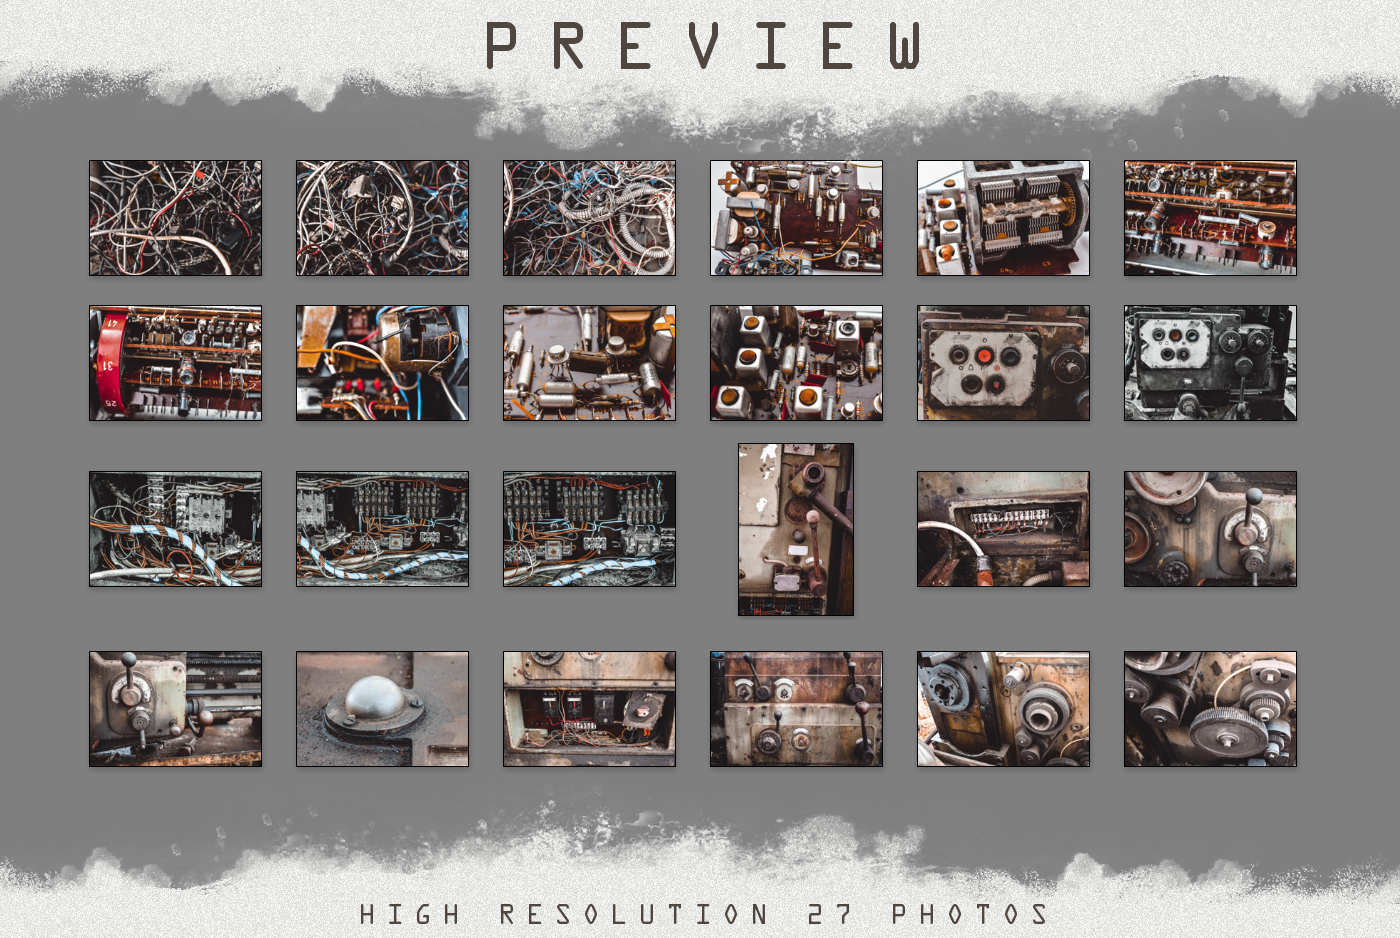 Grunge Steampunk Textures Overlays background pack digital example image 3